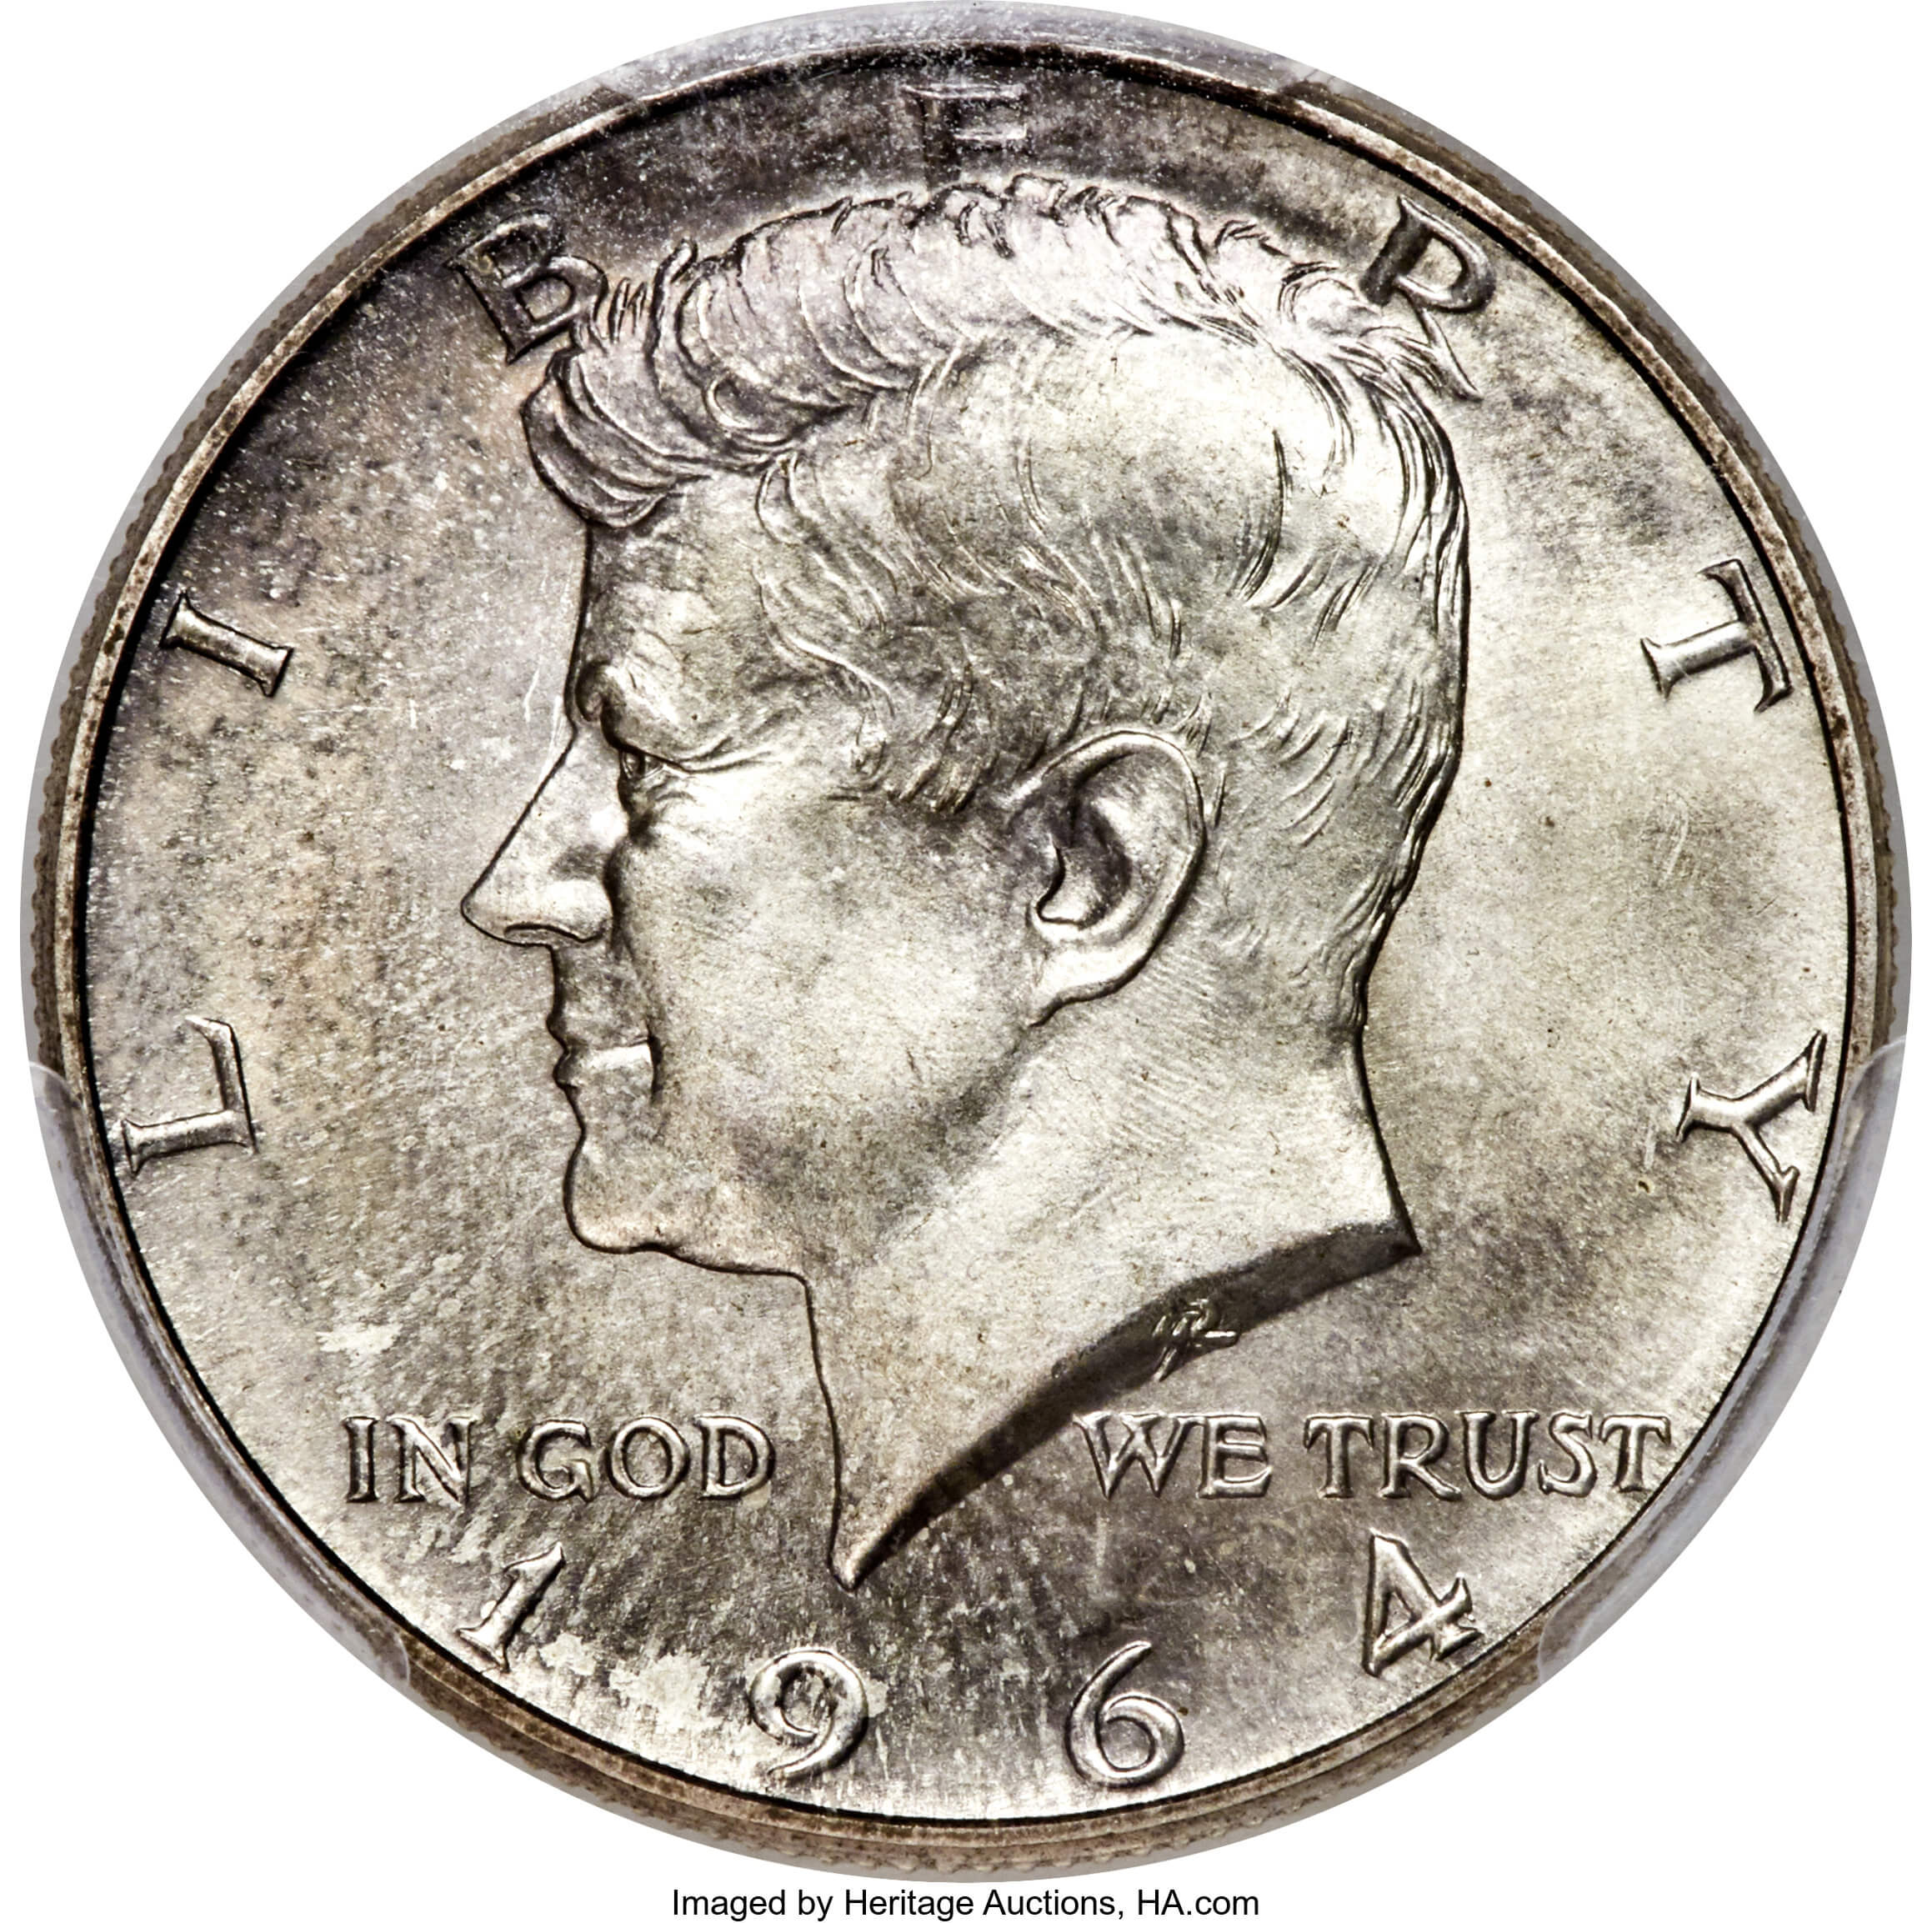 Heritage Auctions Sells Most Expensive Kennedy Half Dollar